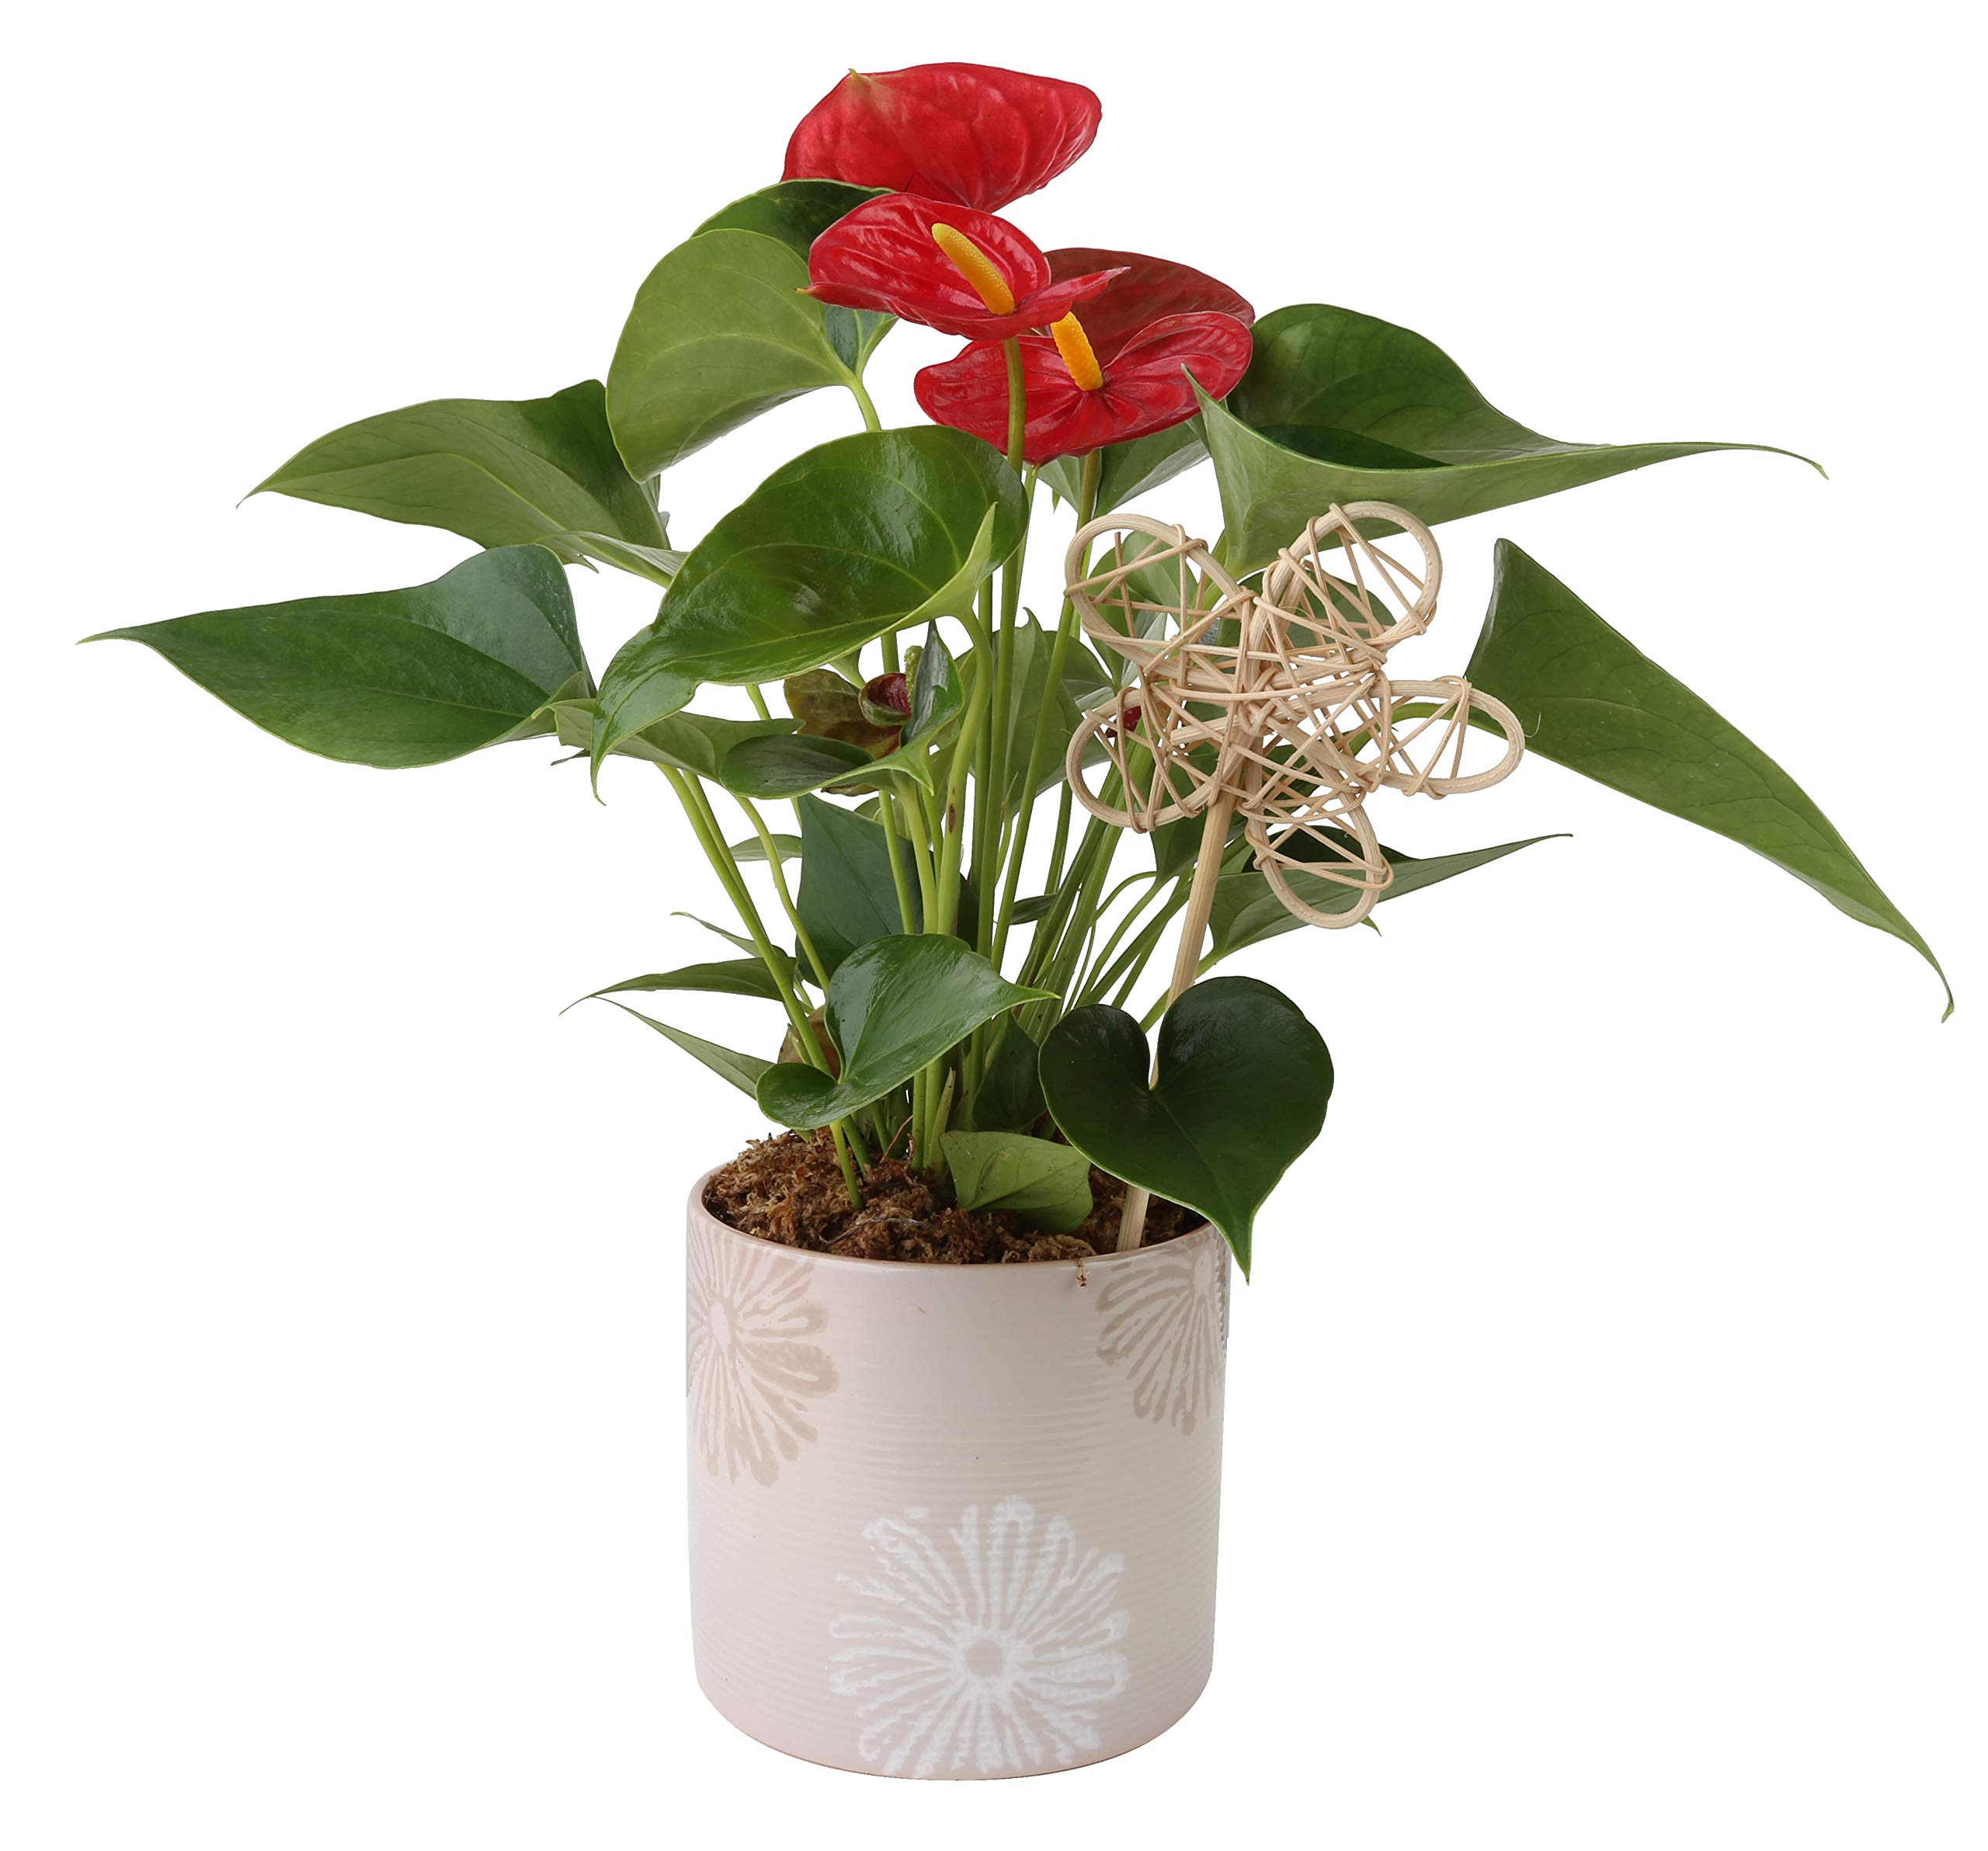 Costa Farms Live Anthurium Indoor Plant in Premium Ceramic, 12-Inches Tall, Great as Gift by Costa Farms (Image #1)